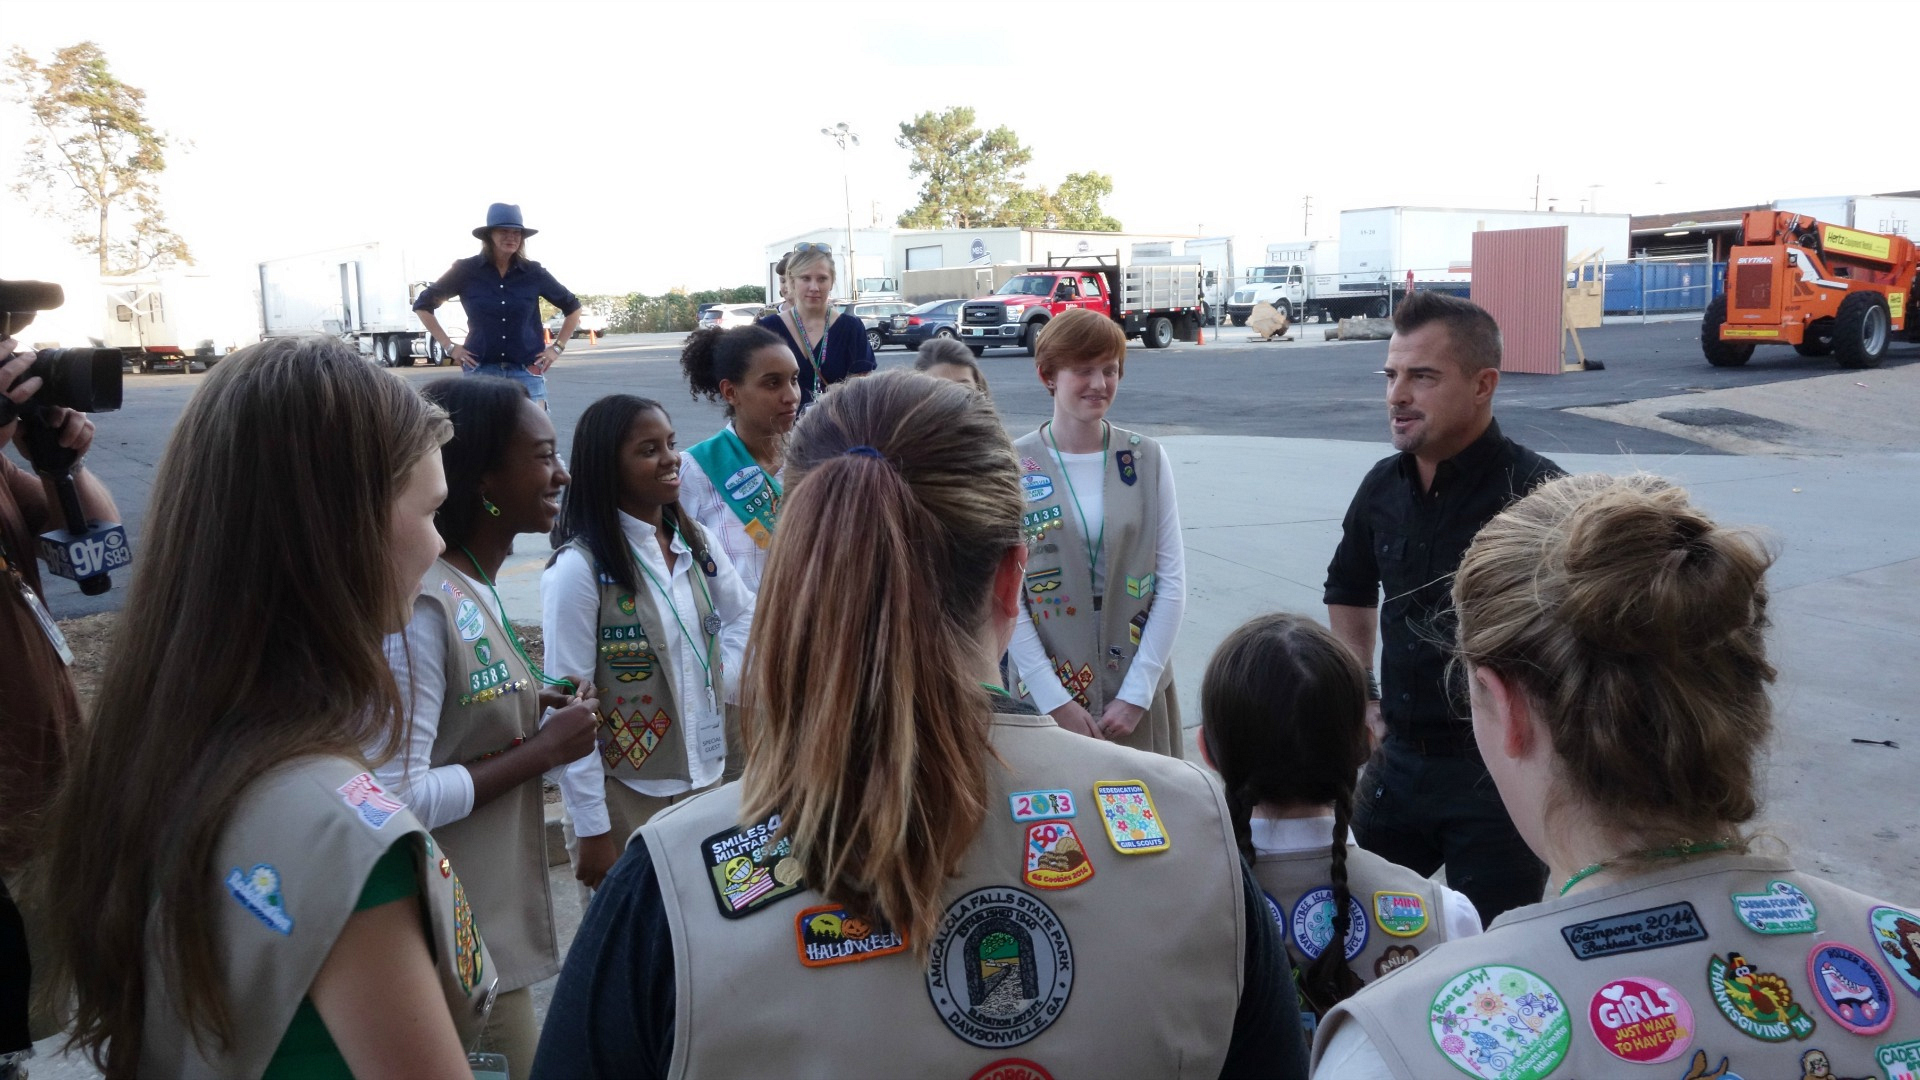 George Eads shares some fun stories with the troop.